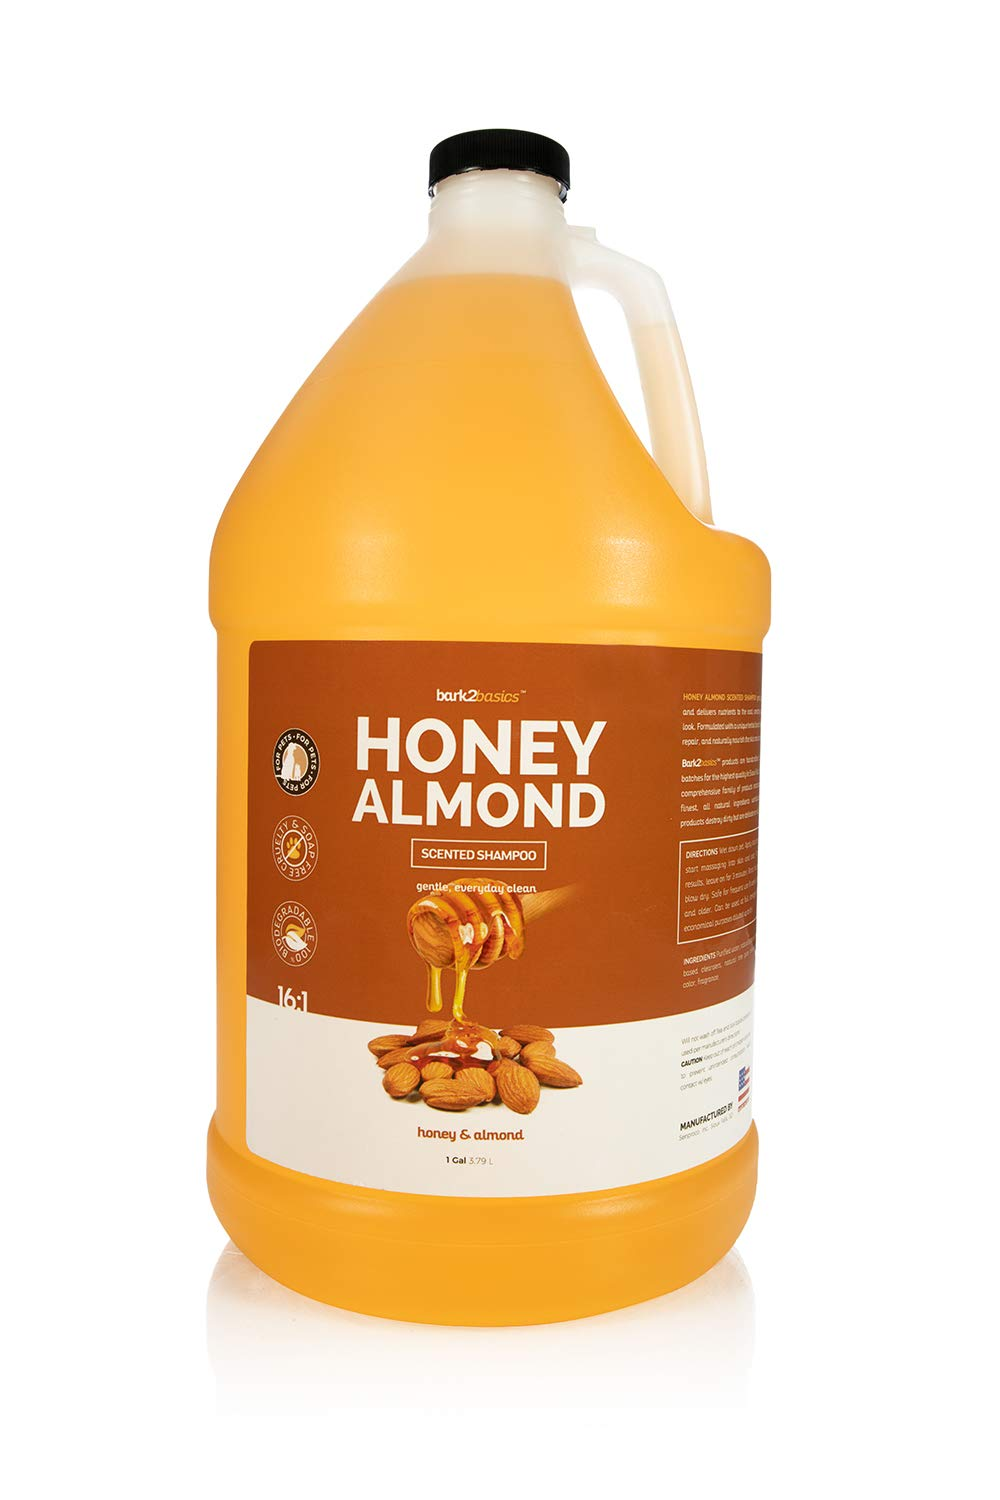 Bark 2 Basics Honey & Almond Shampoo, 1 Gallon